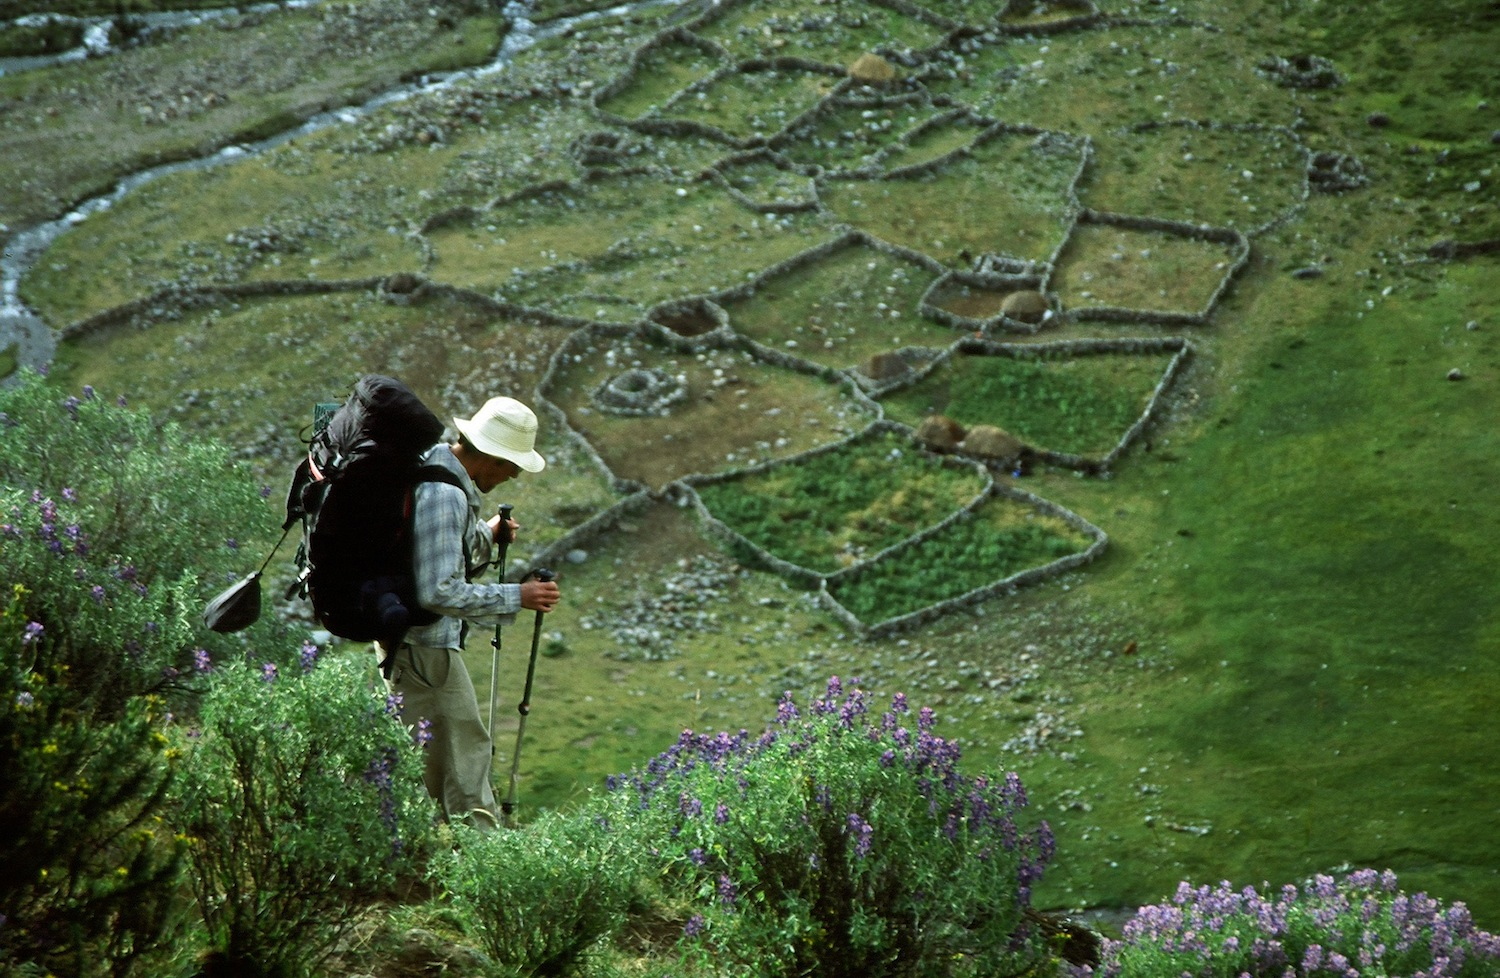 Conservation, ecotourism, and agropastoralism share common ground in the Andes. ©Ben Ditto